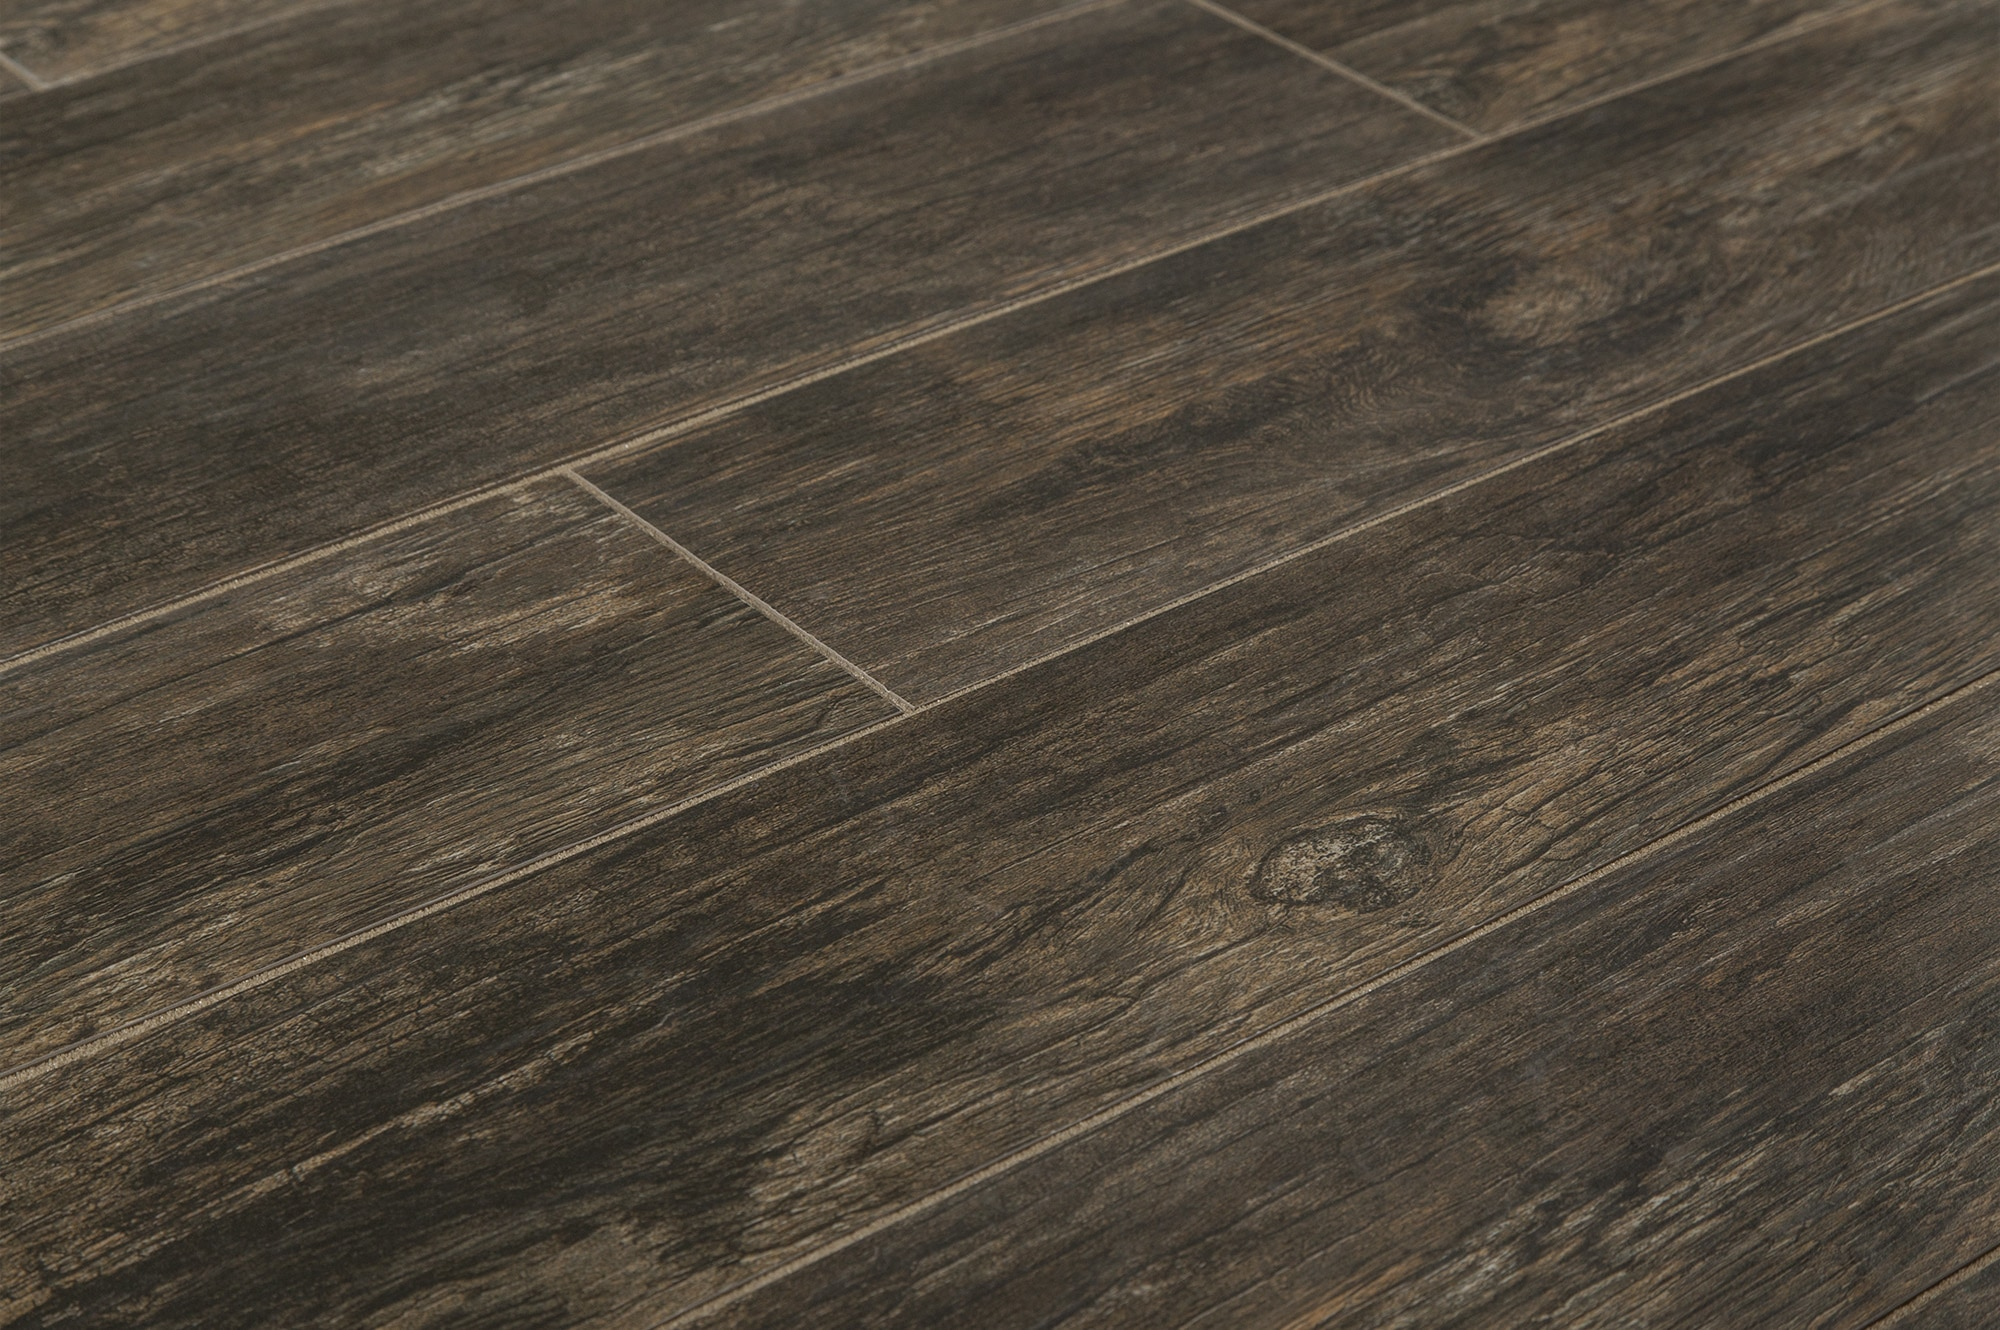 Salerno Porcelain Tile Tacoma Wood Series Dark Spruce